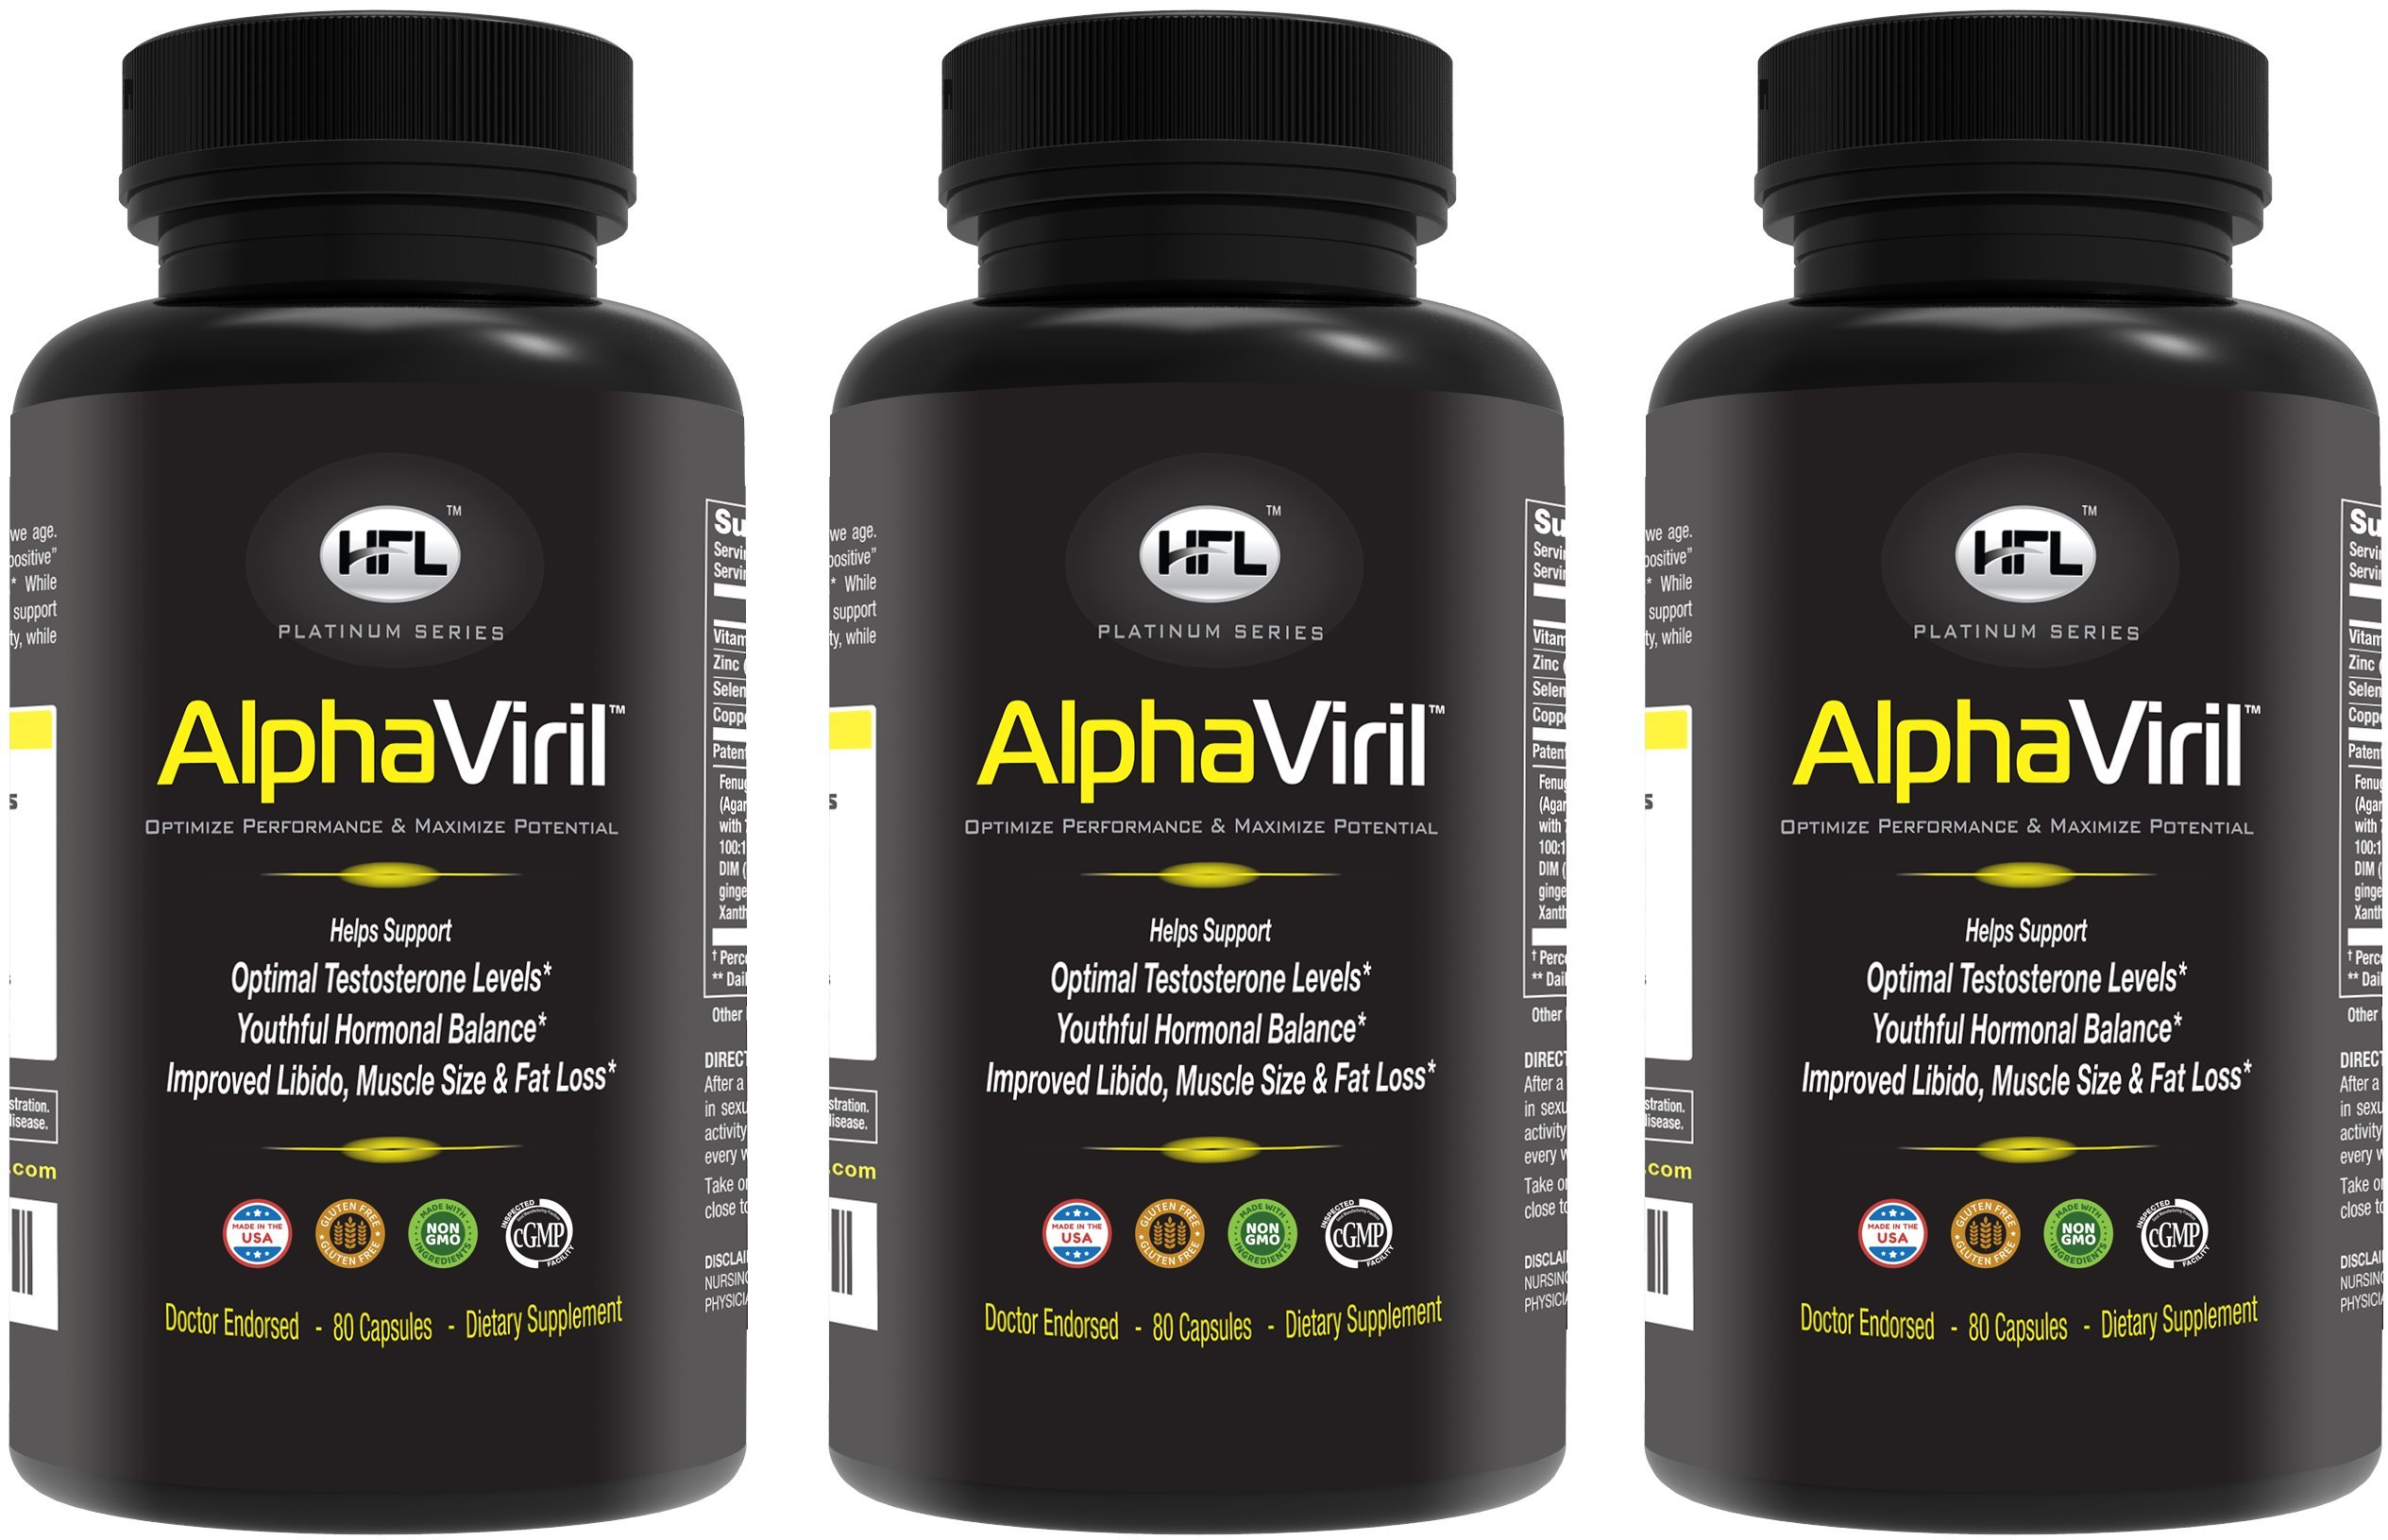 AlphaViril 3 Bottle Pack | Natural Testosterone Booster, Increases Libido, Sex Drive, Strength, Energy, Builds Muscle | for Men & Women | Made in USA | Tongkat Ali Extract, Horny Goat Weed.